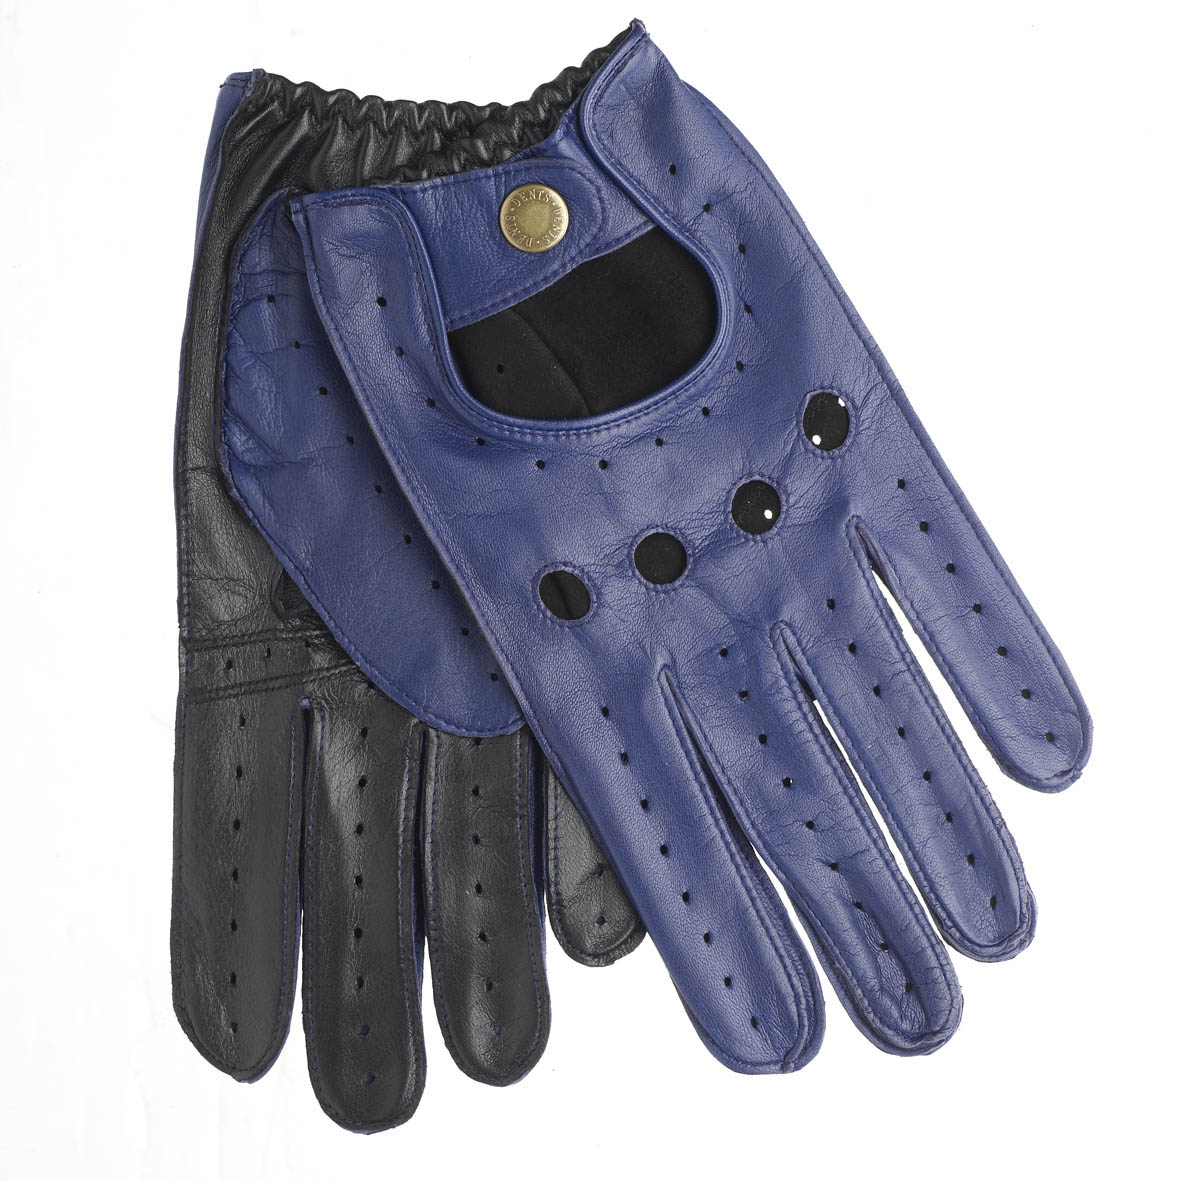 Blue leather driving gloves - Image Is Loading Dents Leather Driving Gloves 5 1021 Royal Blue